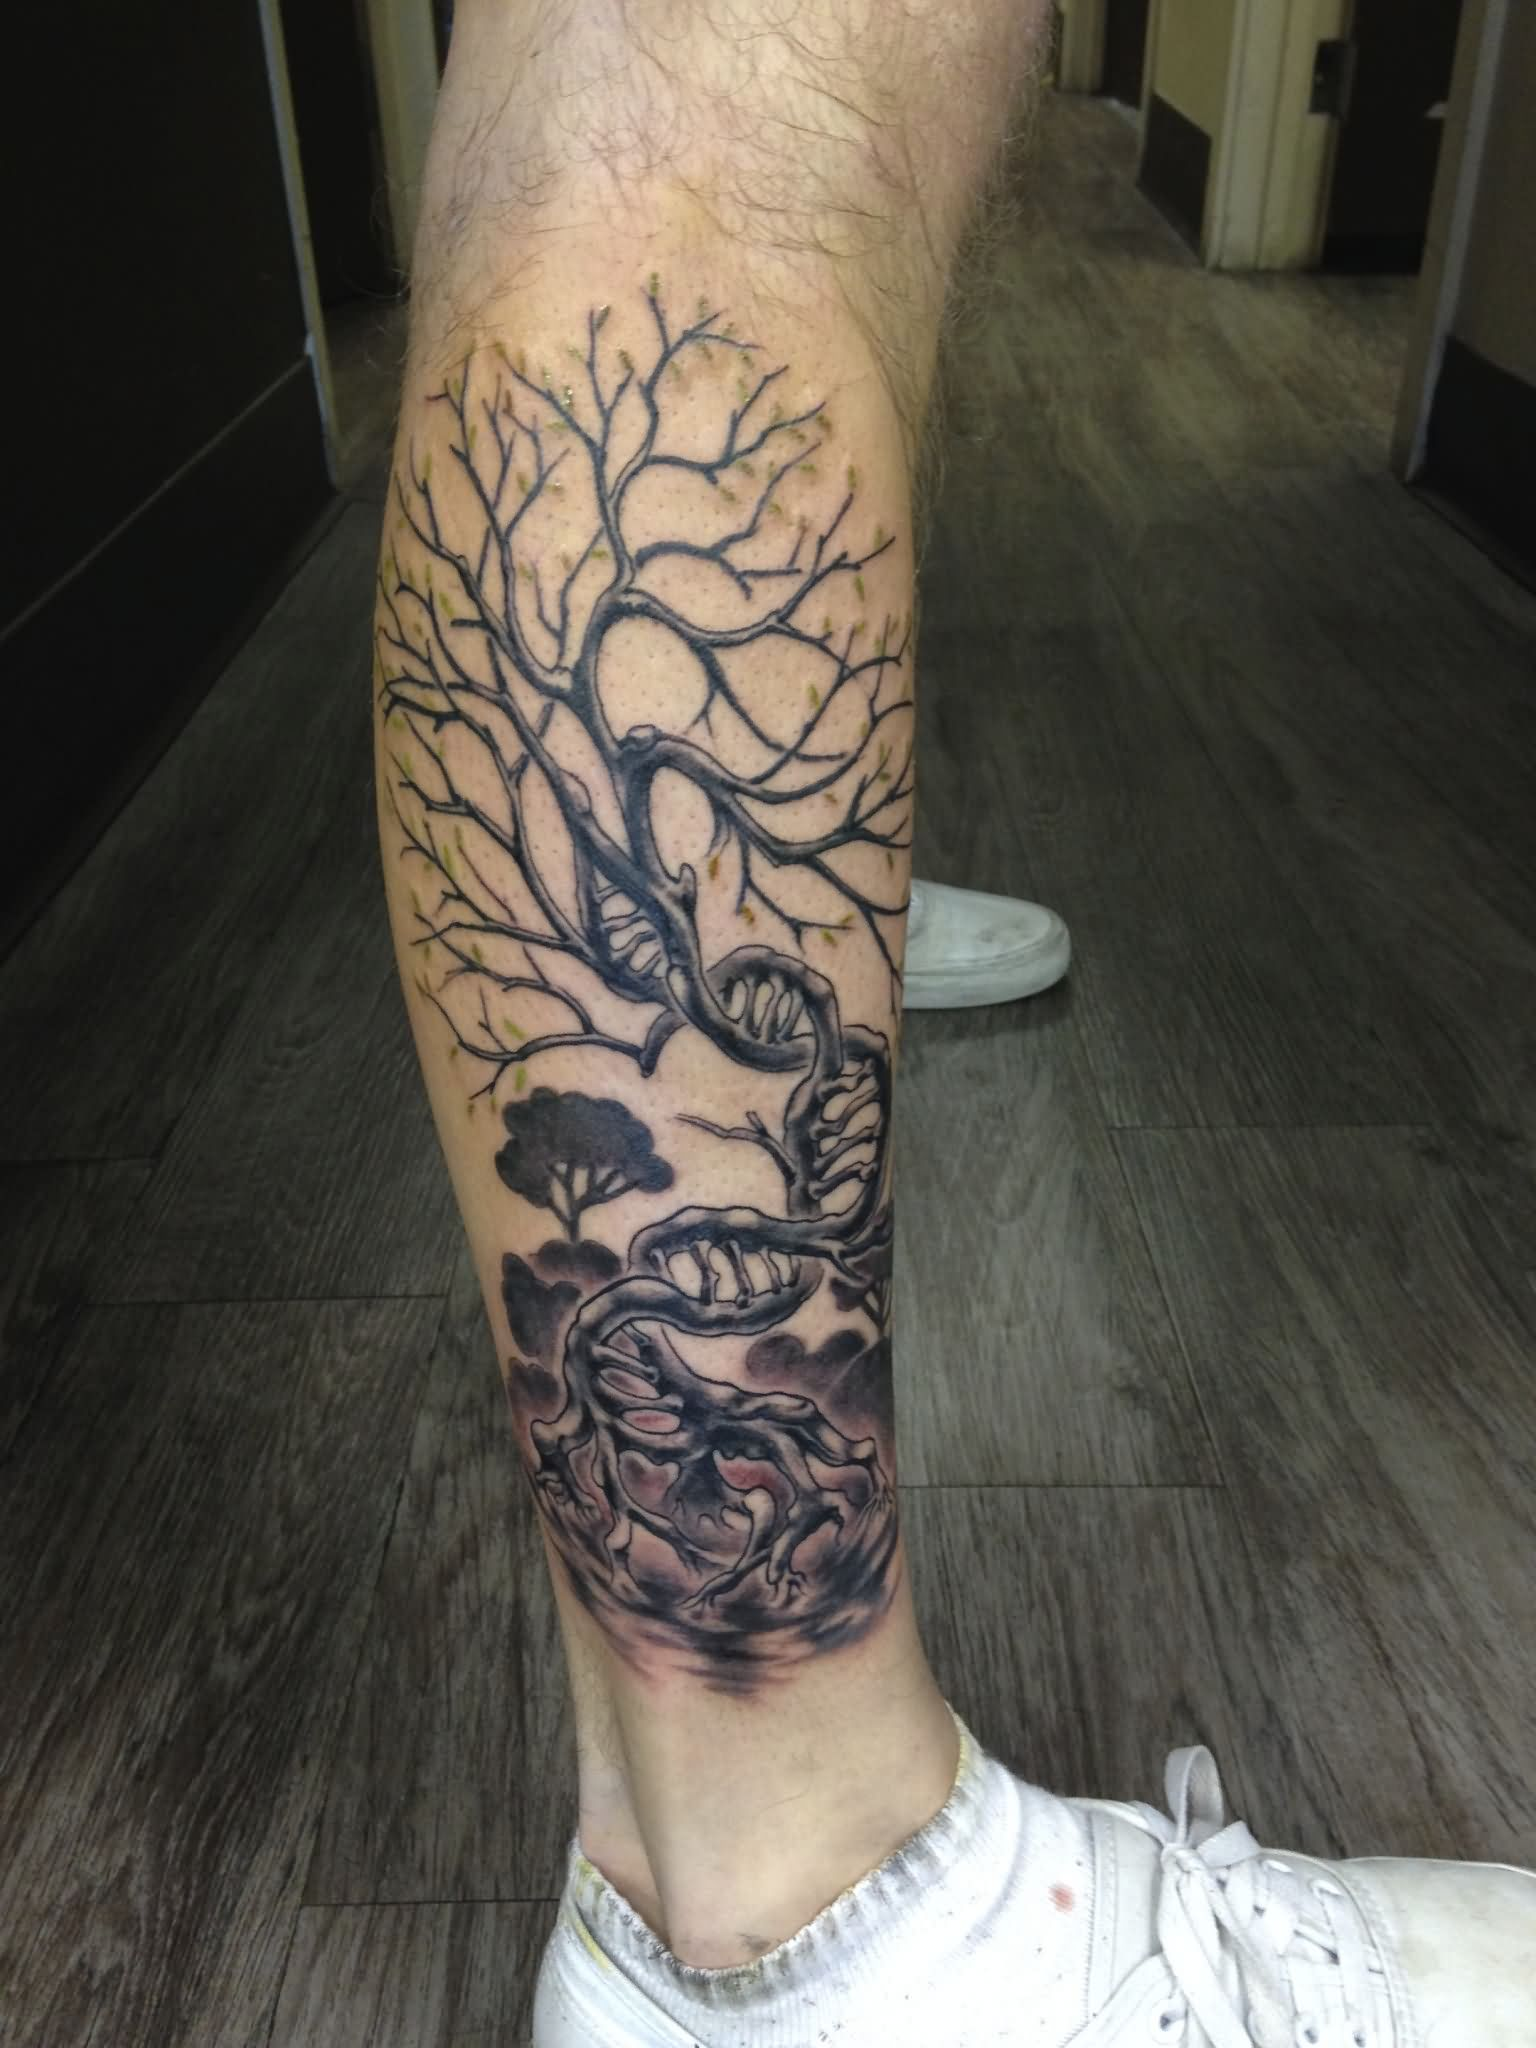 Black Ink Tree Without Leaves Tattoo On Right Leg